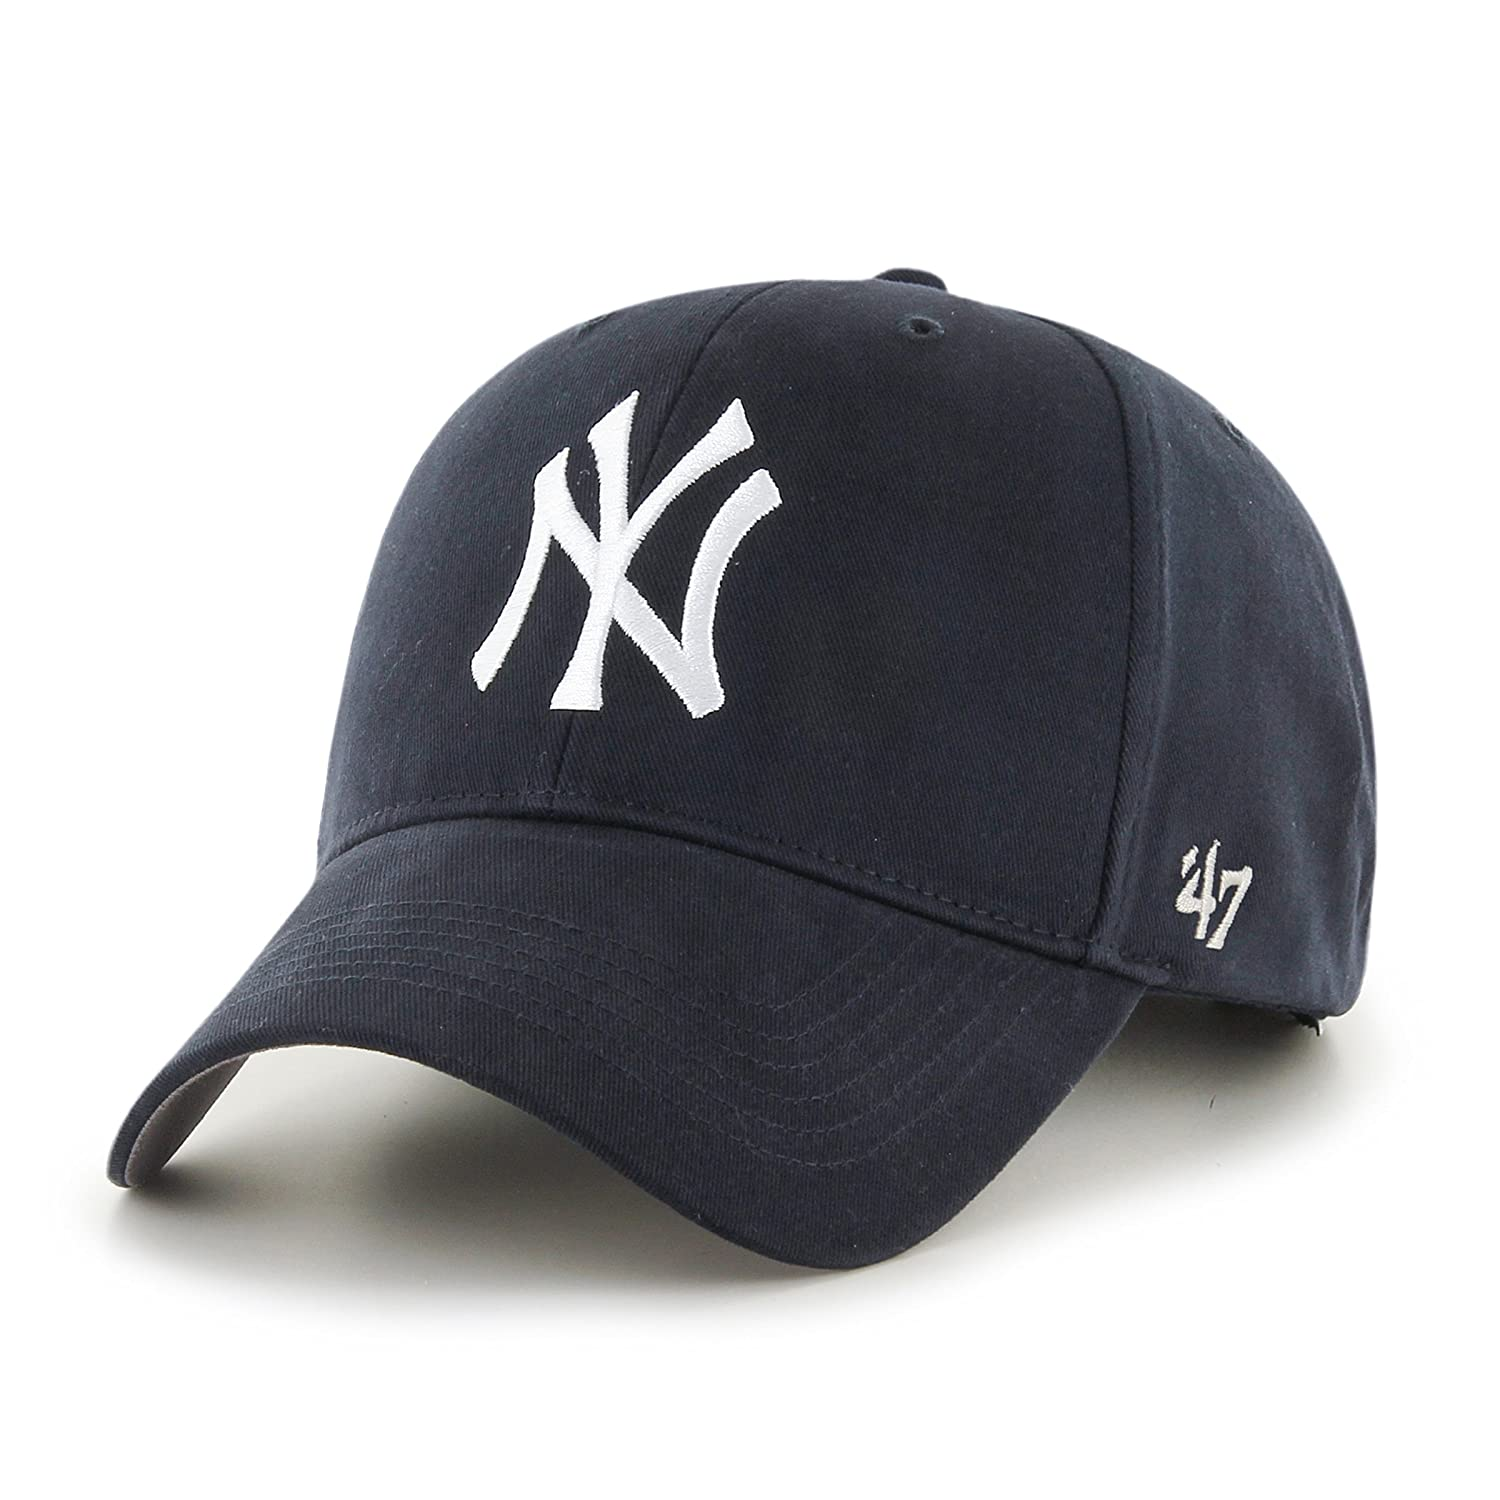 official photos 31930 f0d41 Amazon.com    47 MLB Basic MVP Adjustable Hat   Clothing